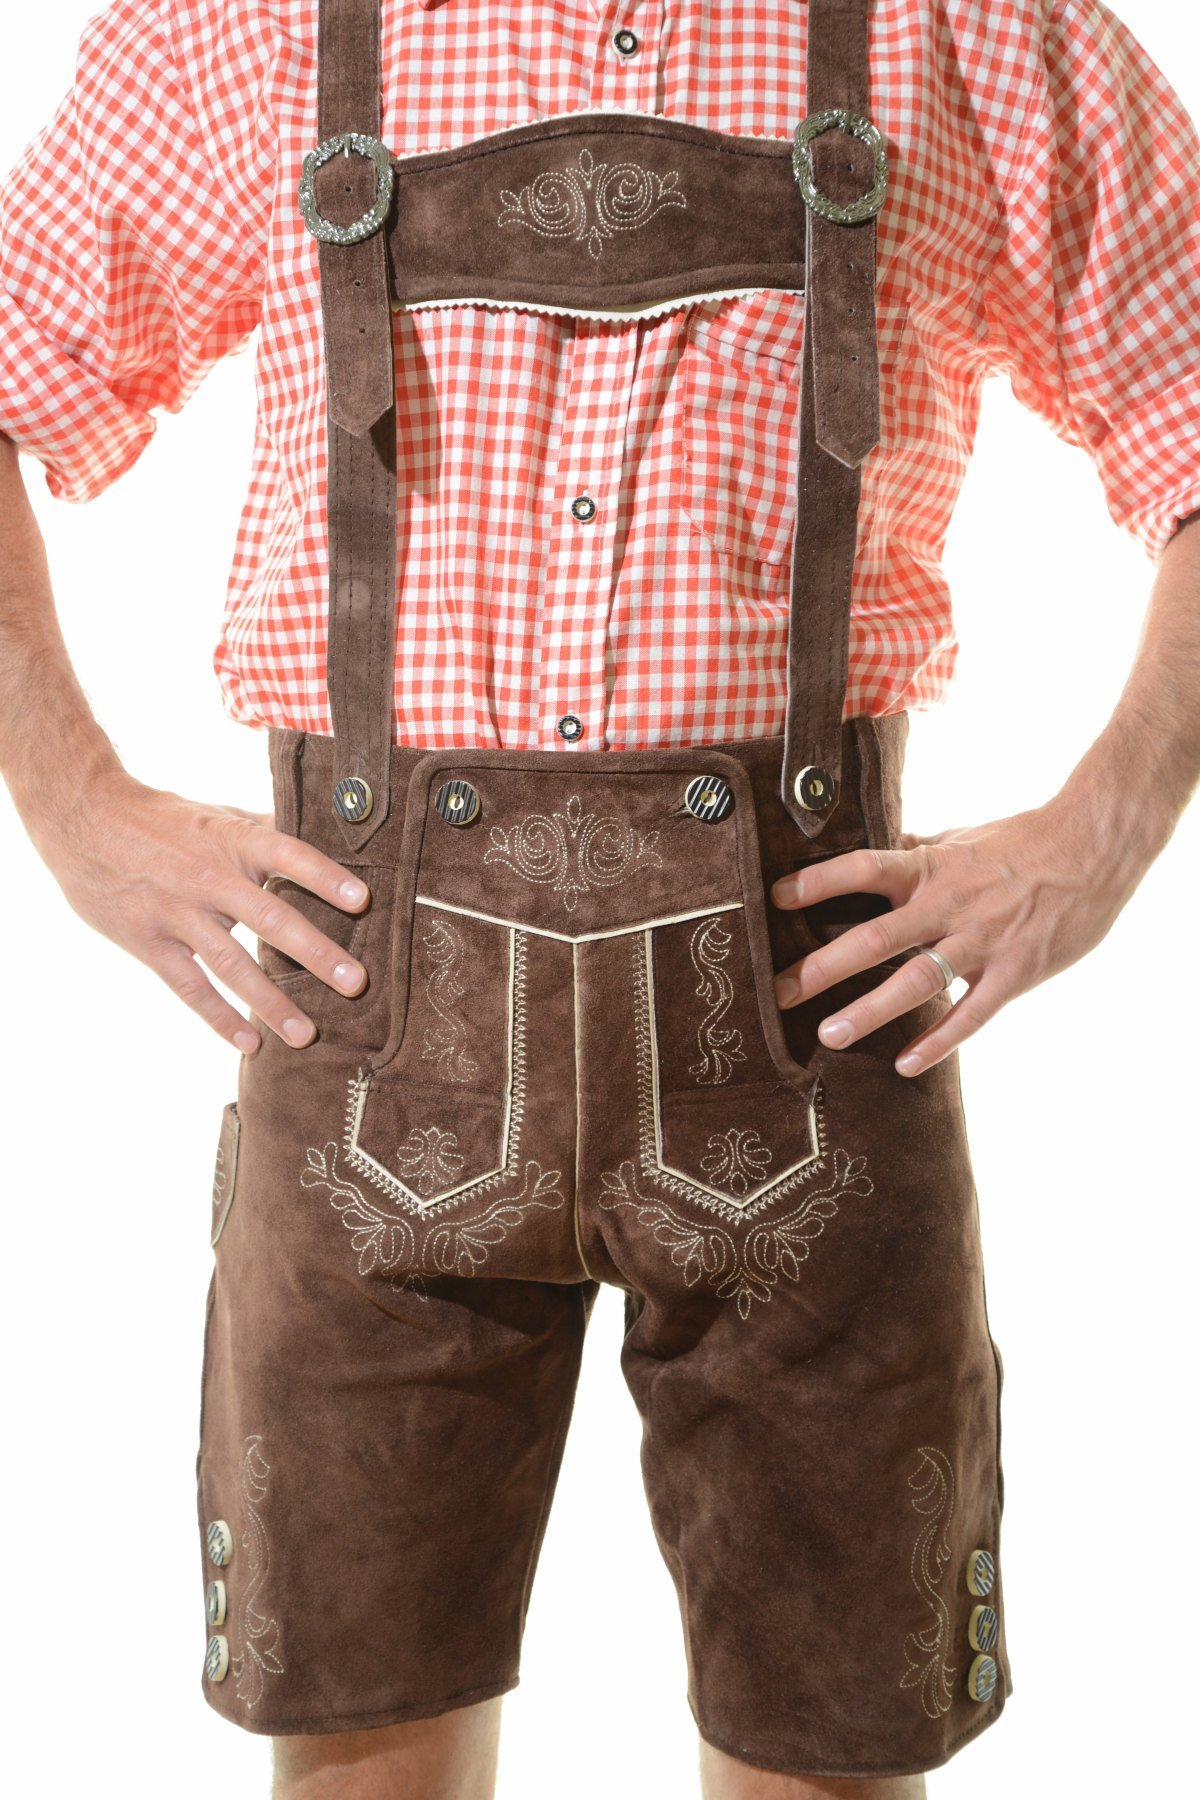 lederhosen4u ''KAISER'' German Bavarian Tracht Oktoberfest Lederhosen For Sale Brown 42